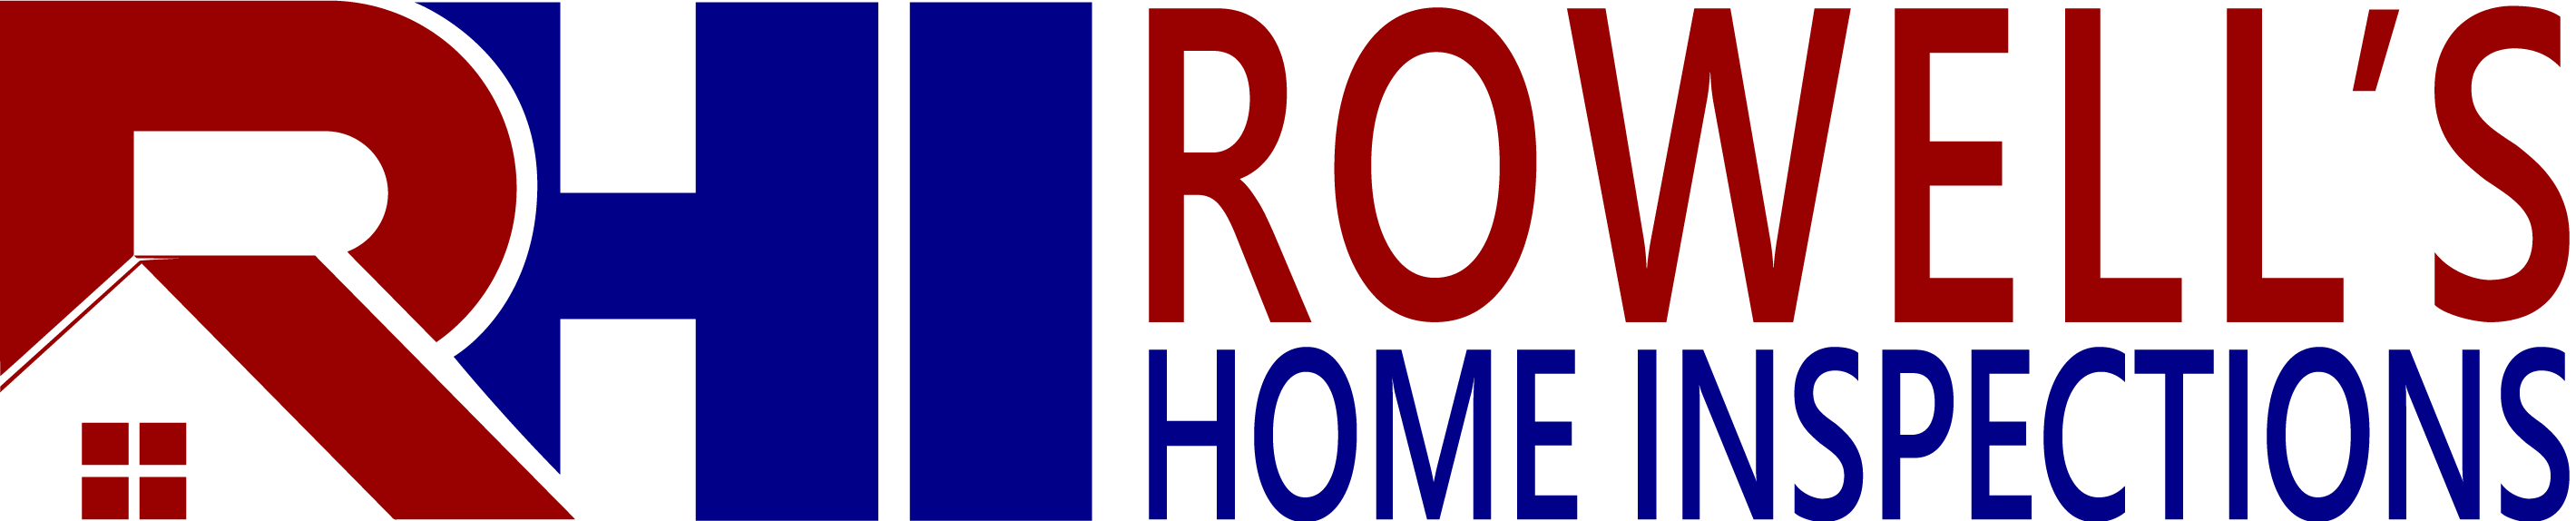 Rowell's Home Inspections